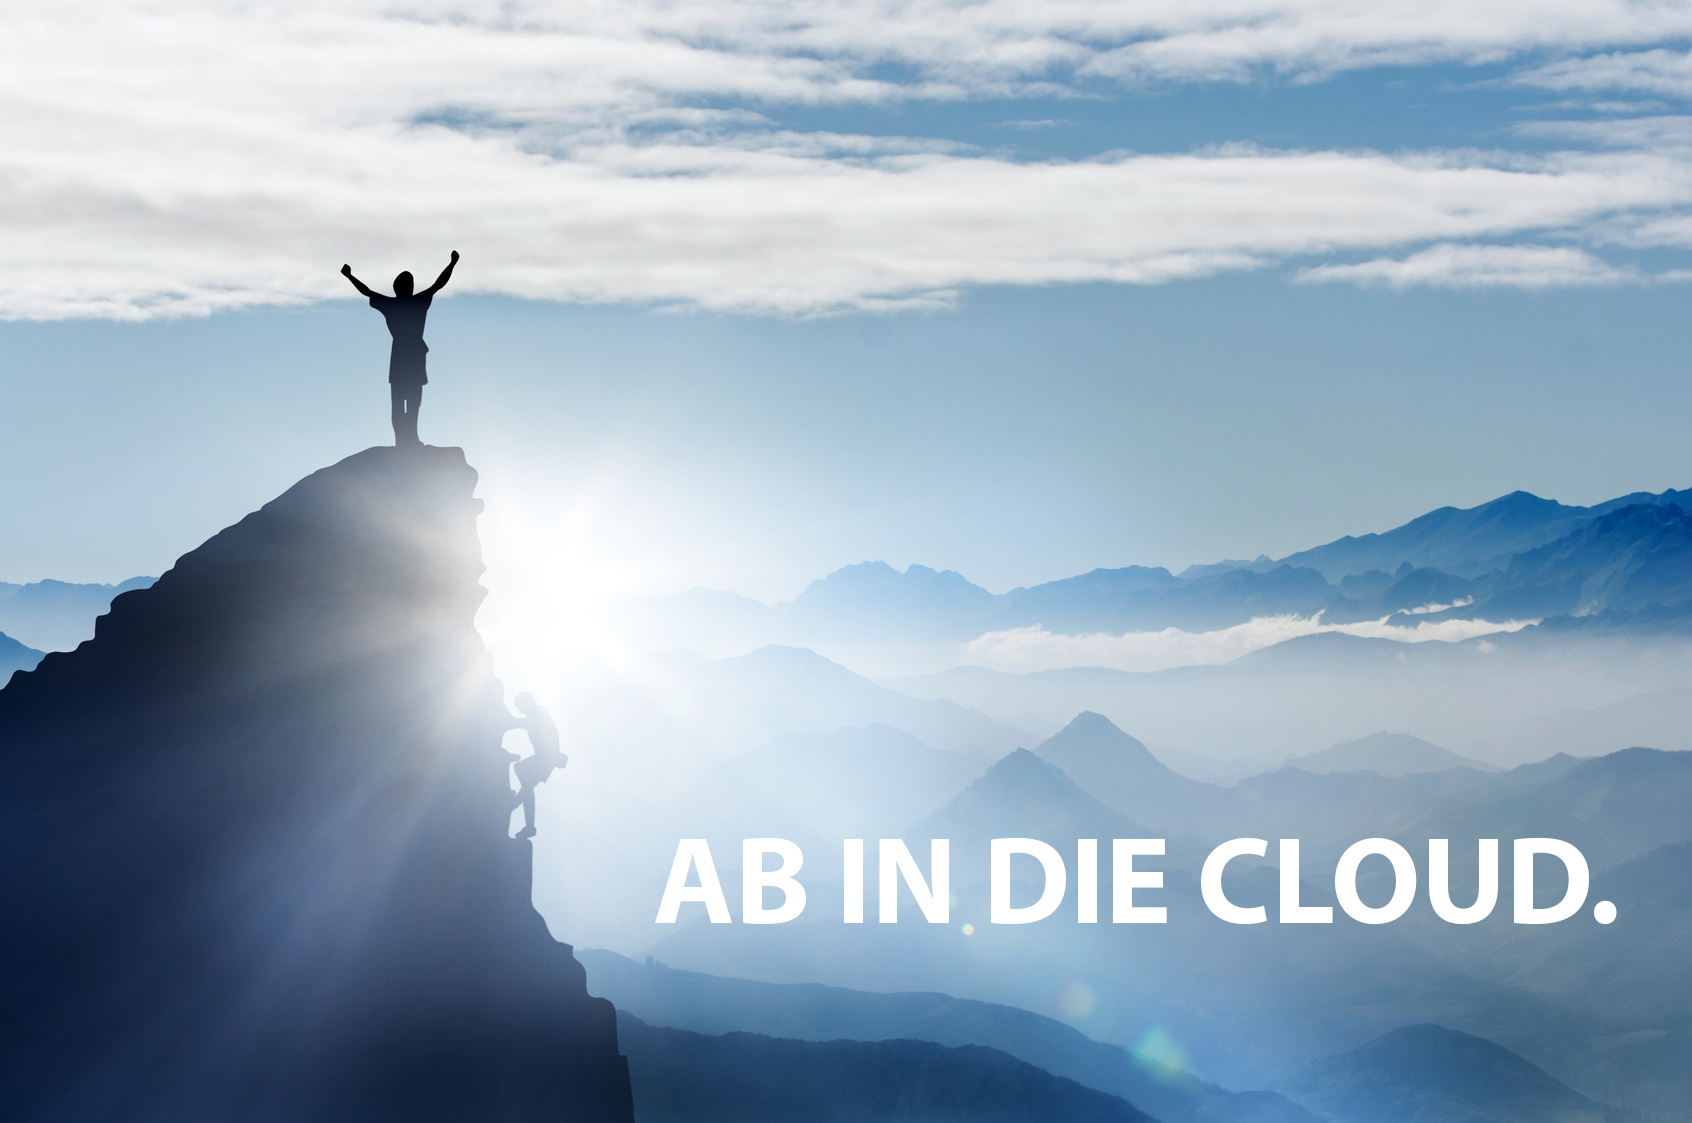 Ab in die Cloud